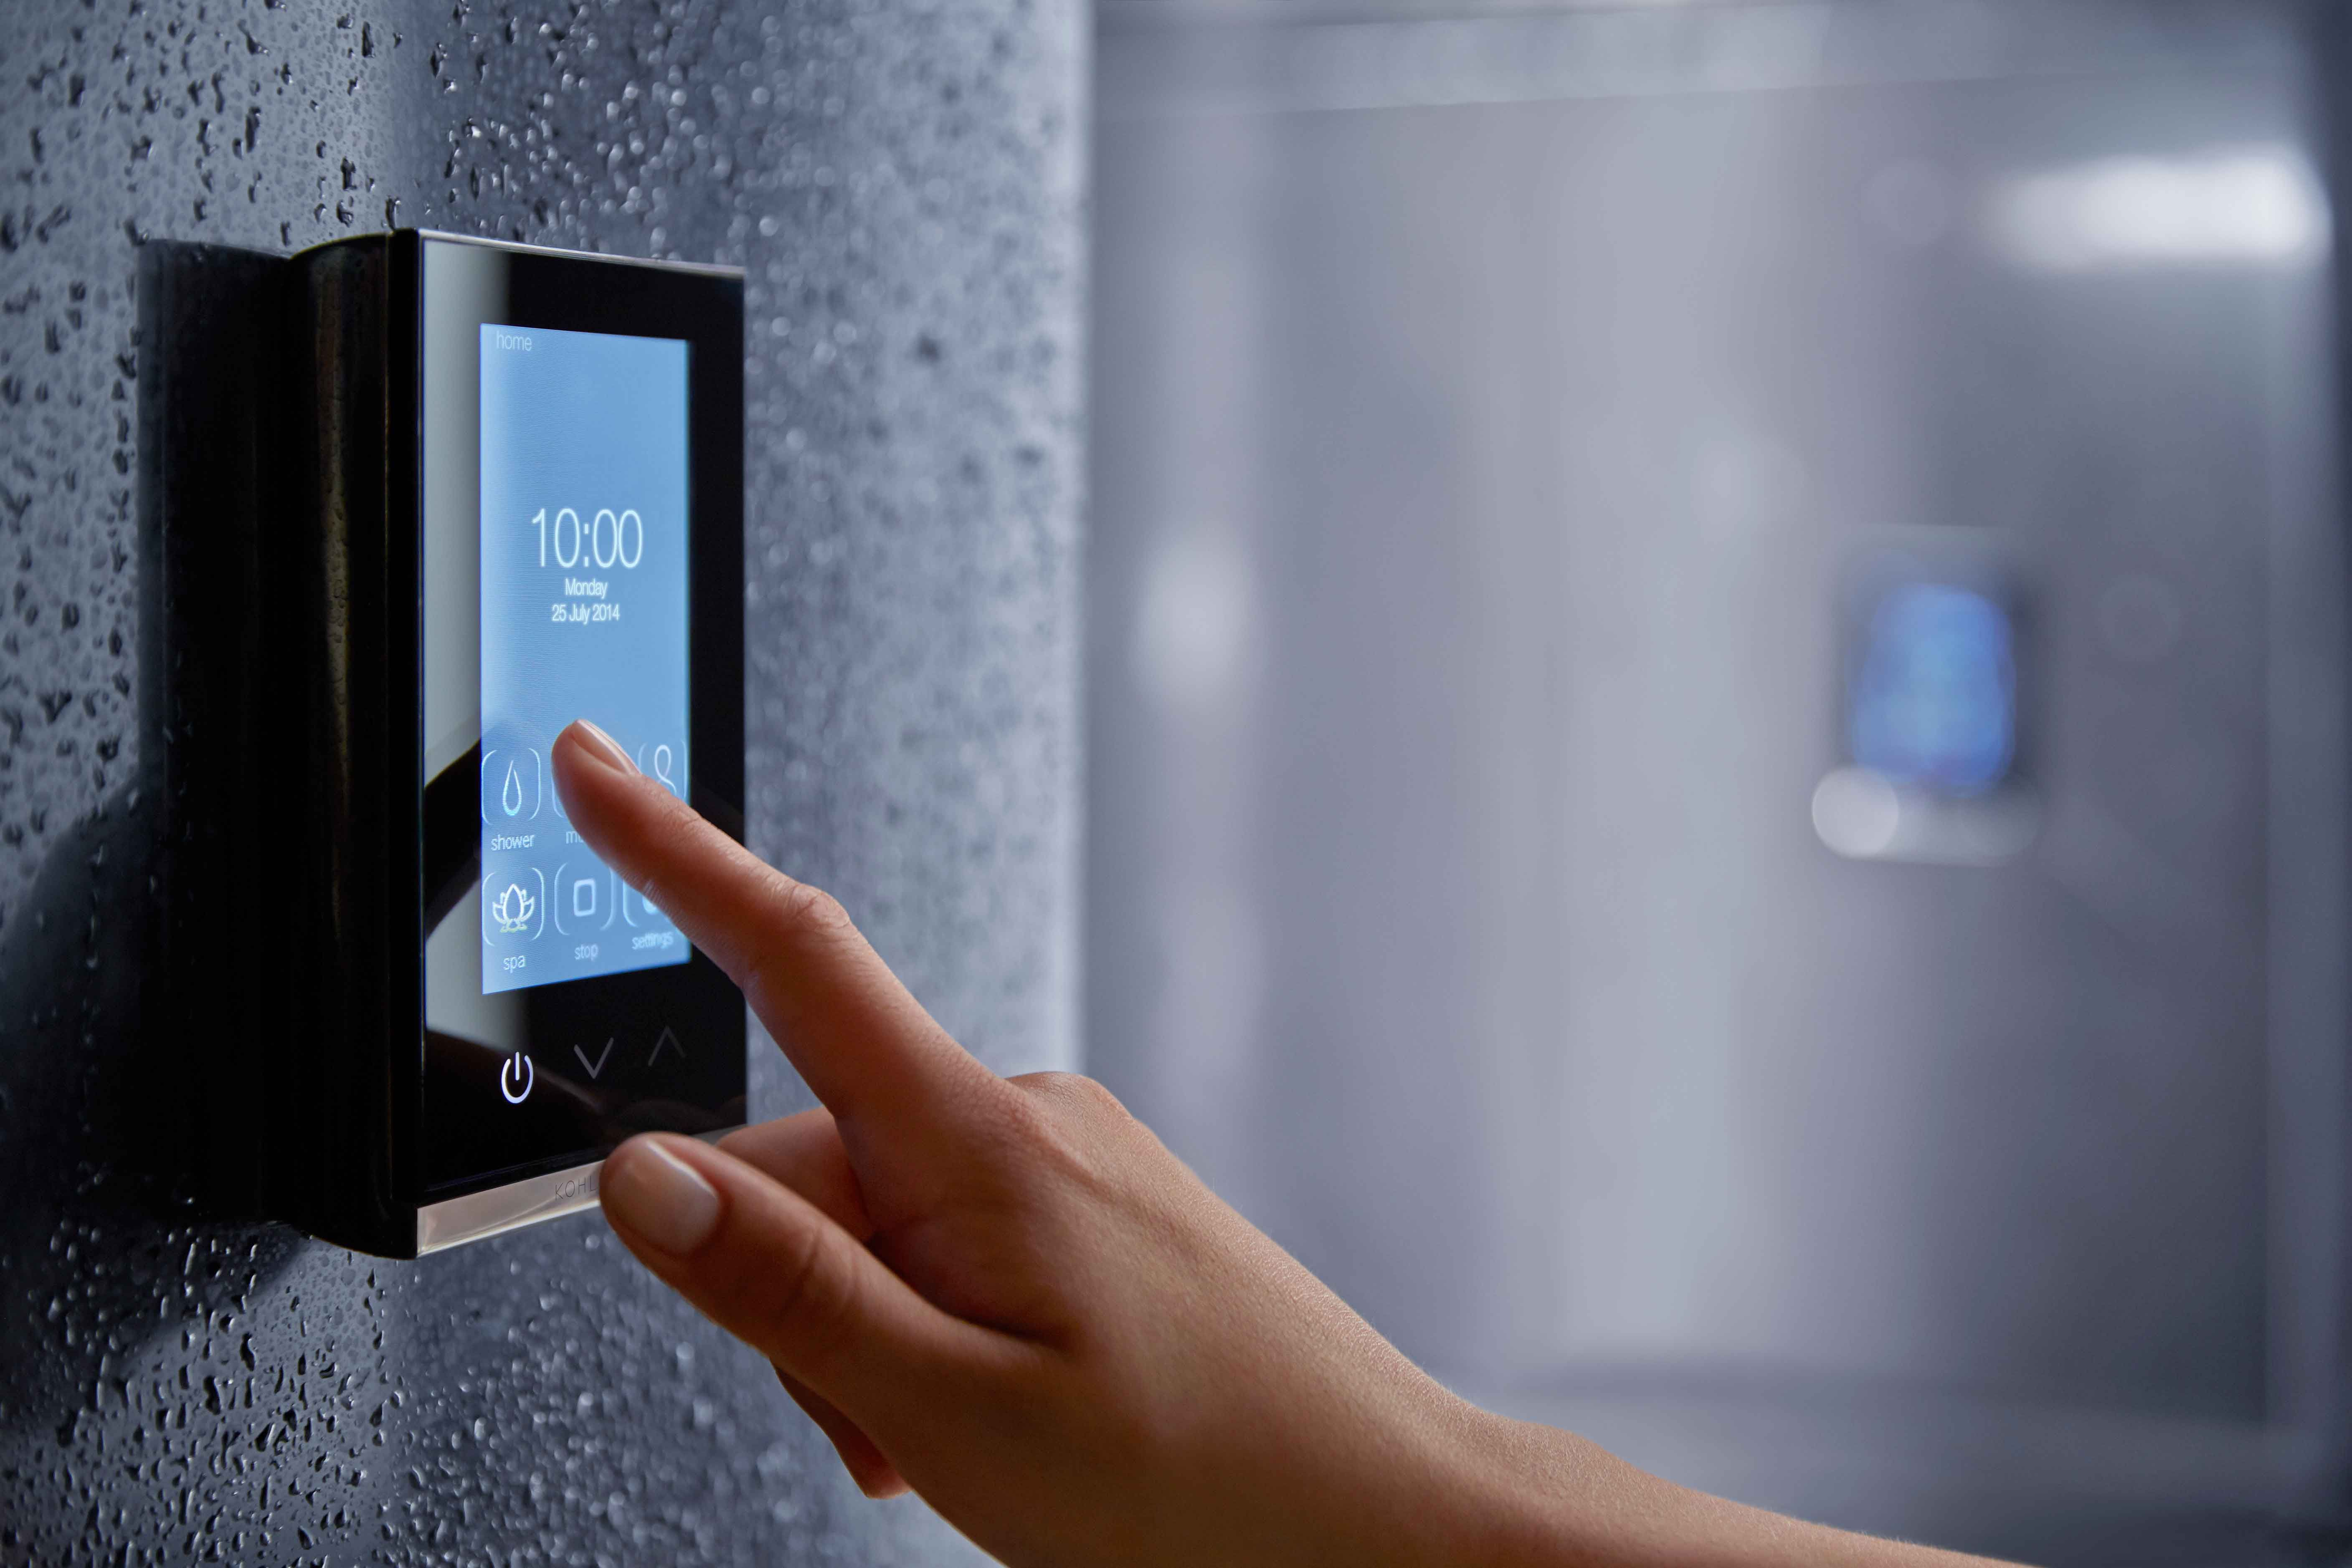 Good Smart Shower Shower That Tracks And Monitors Your Water Usage. Excellent  Example Of U0027Nudge